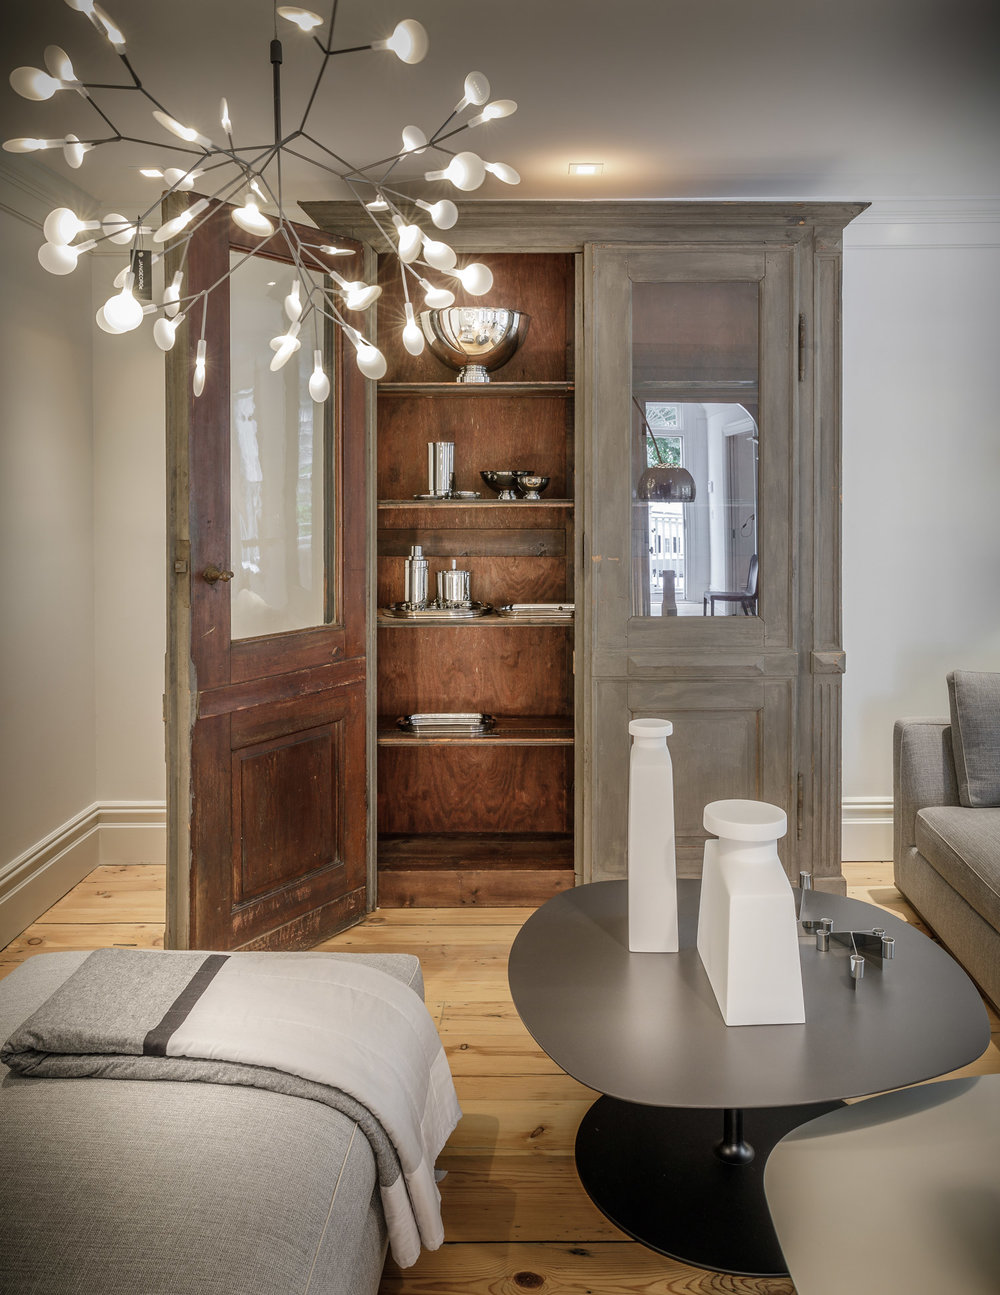 Antique Cabinet With Georg Jensen Collection In The Main Living Room On The  First Floor.